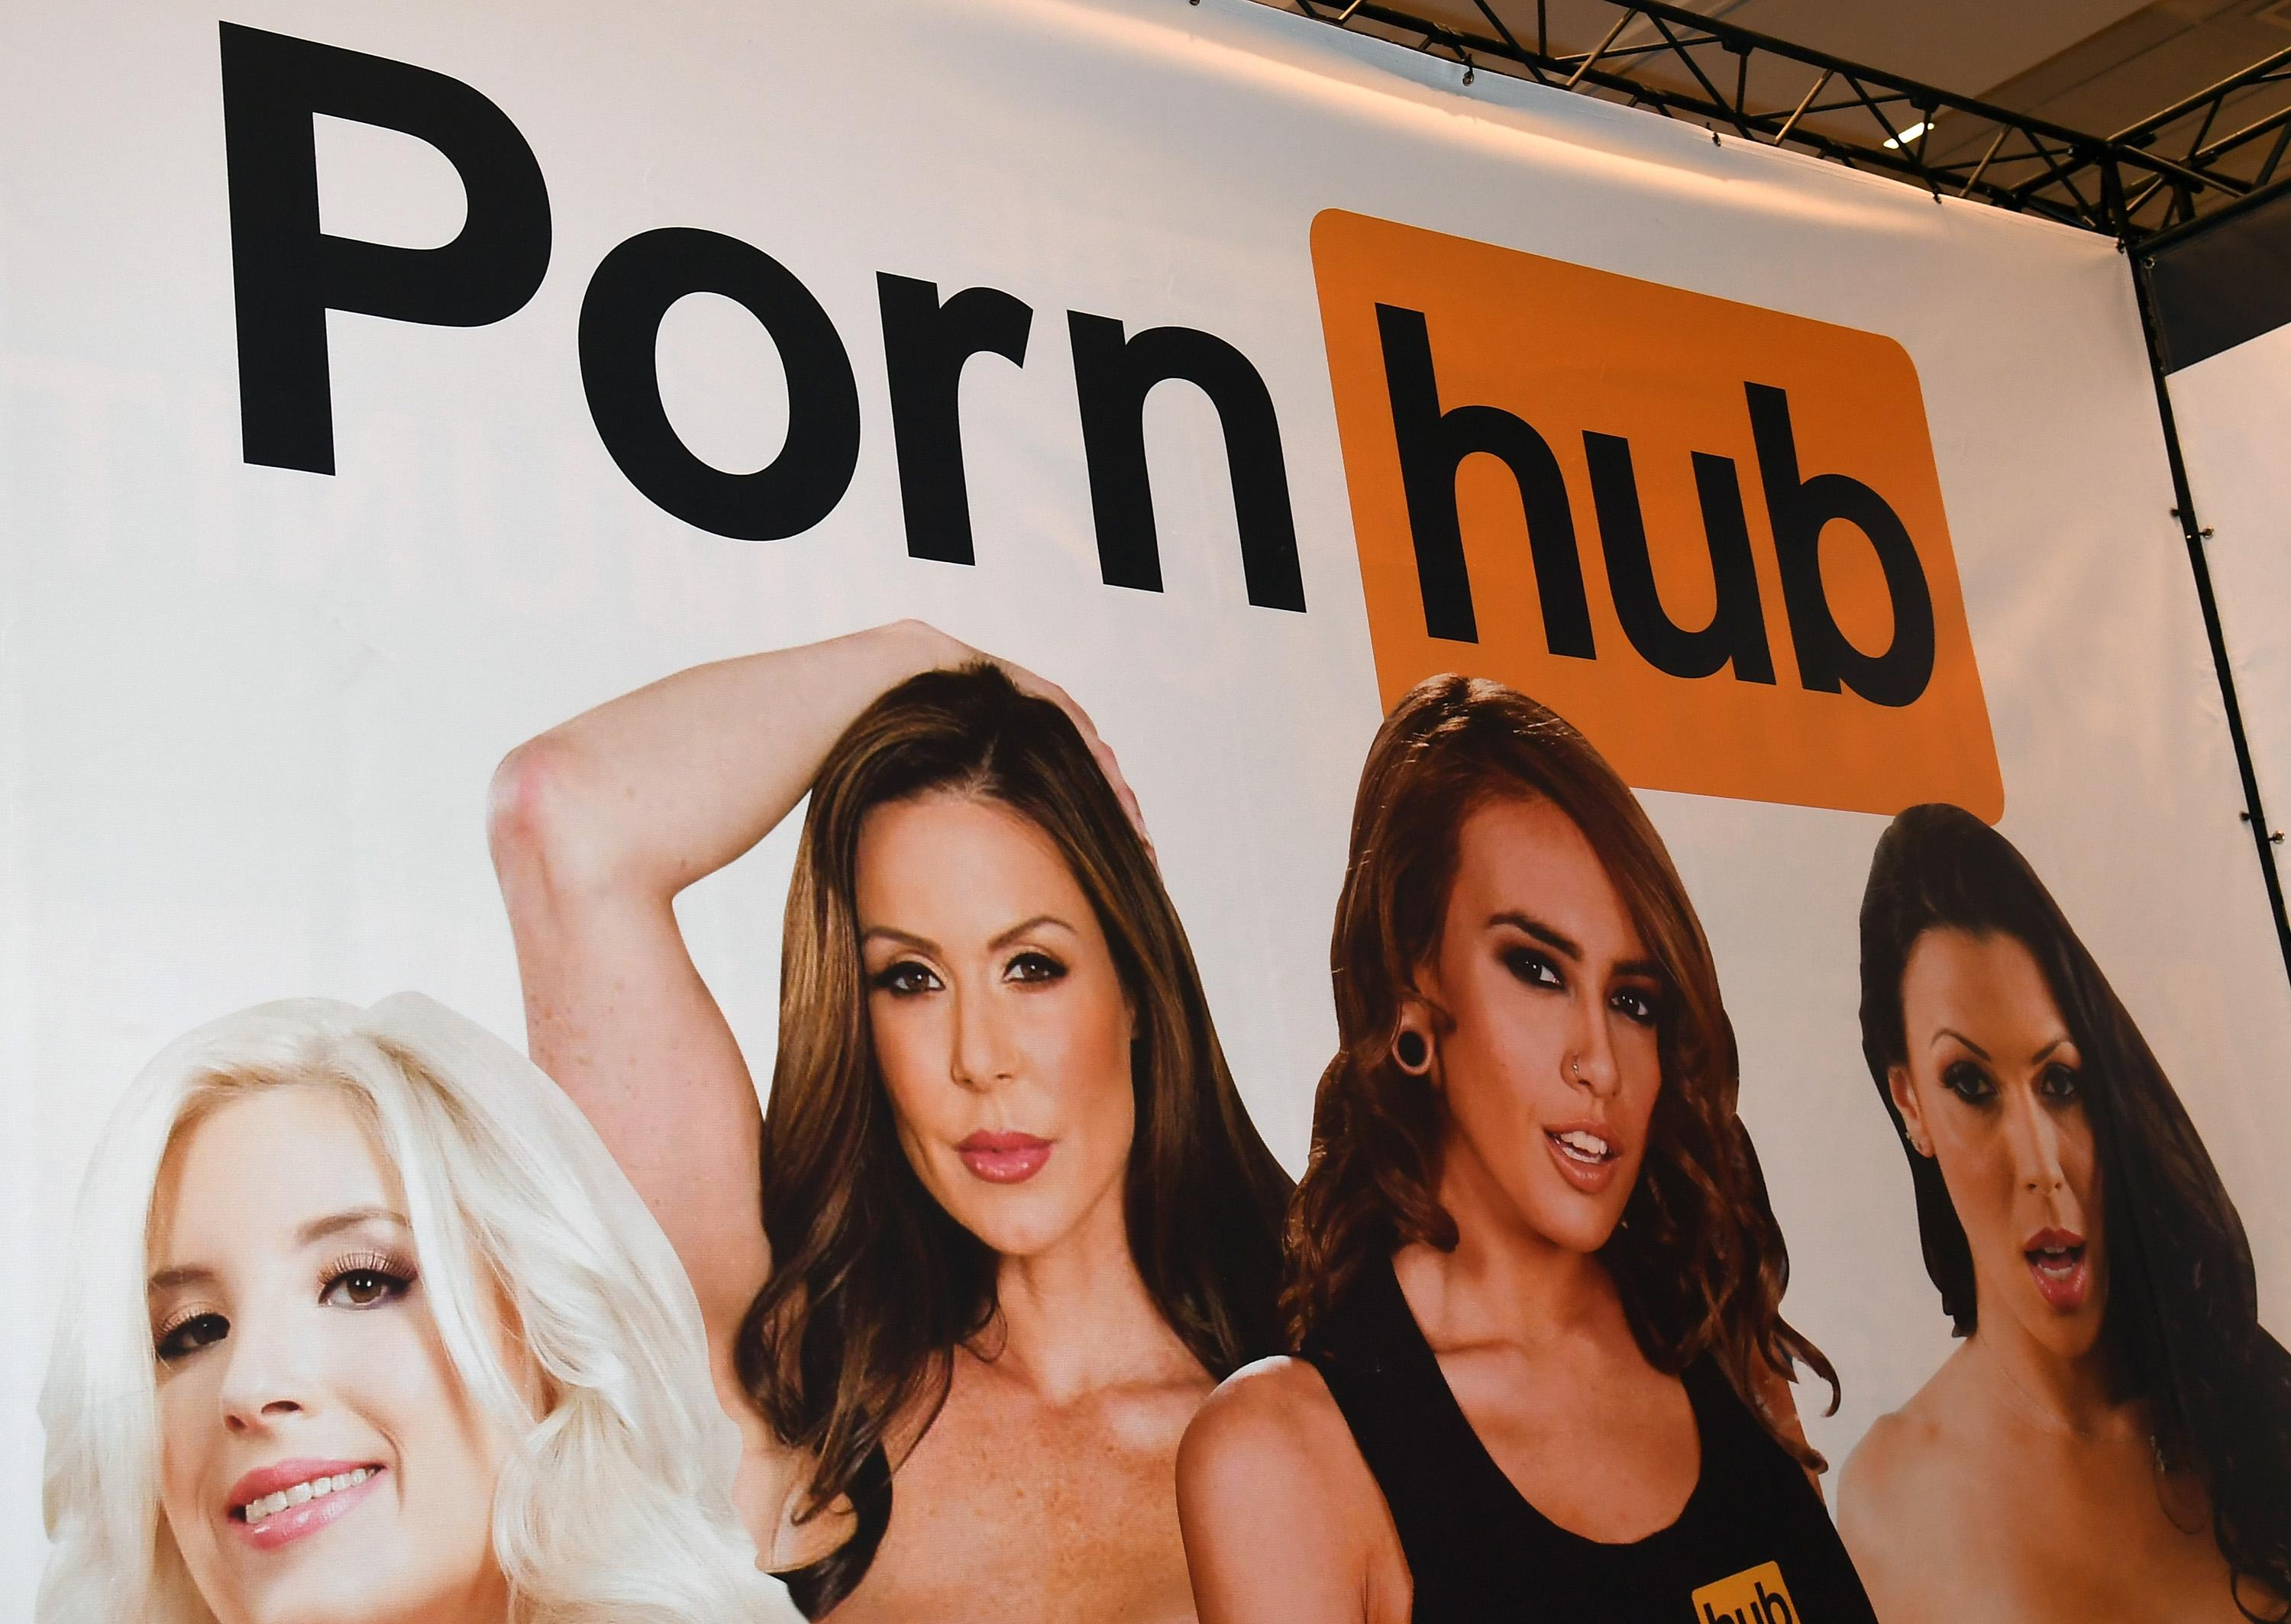 Twitter, Pornhub and Reddit ban 'deepfake' AI edited pornography videos